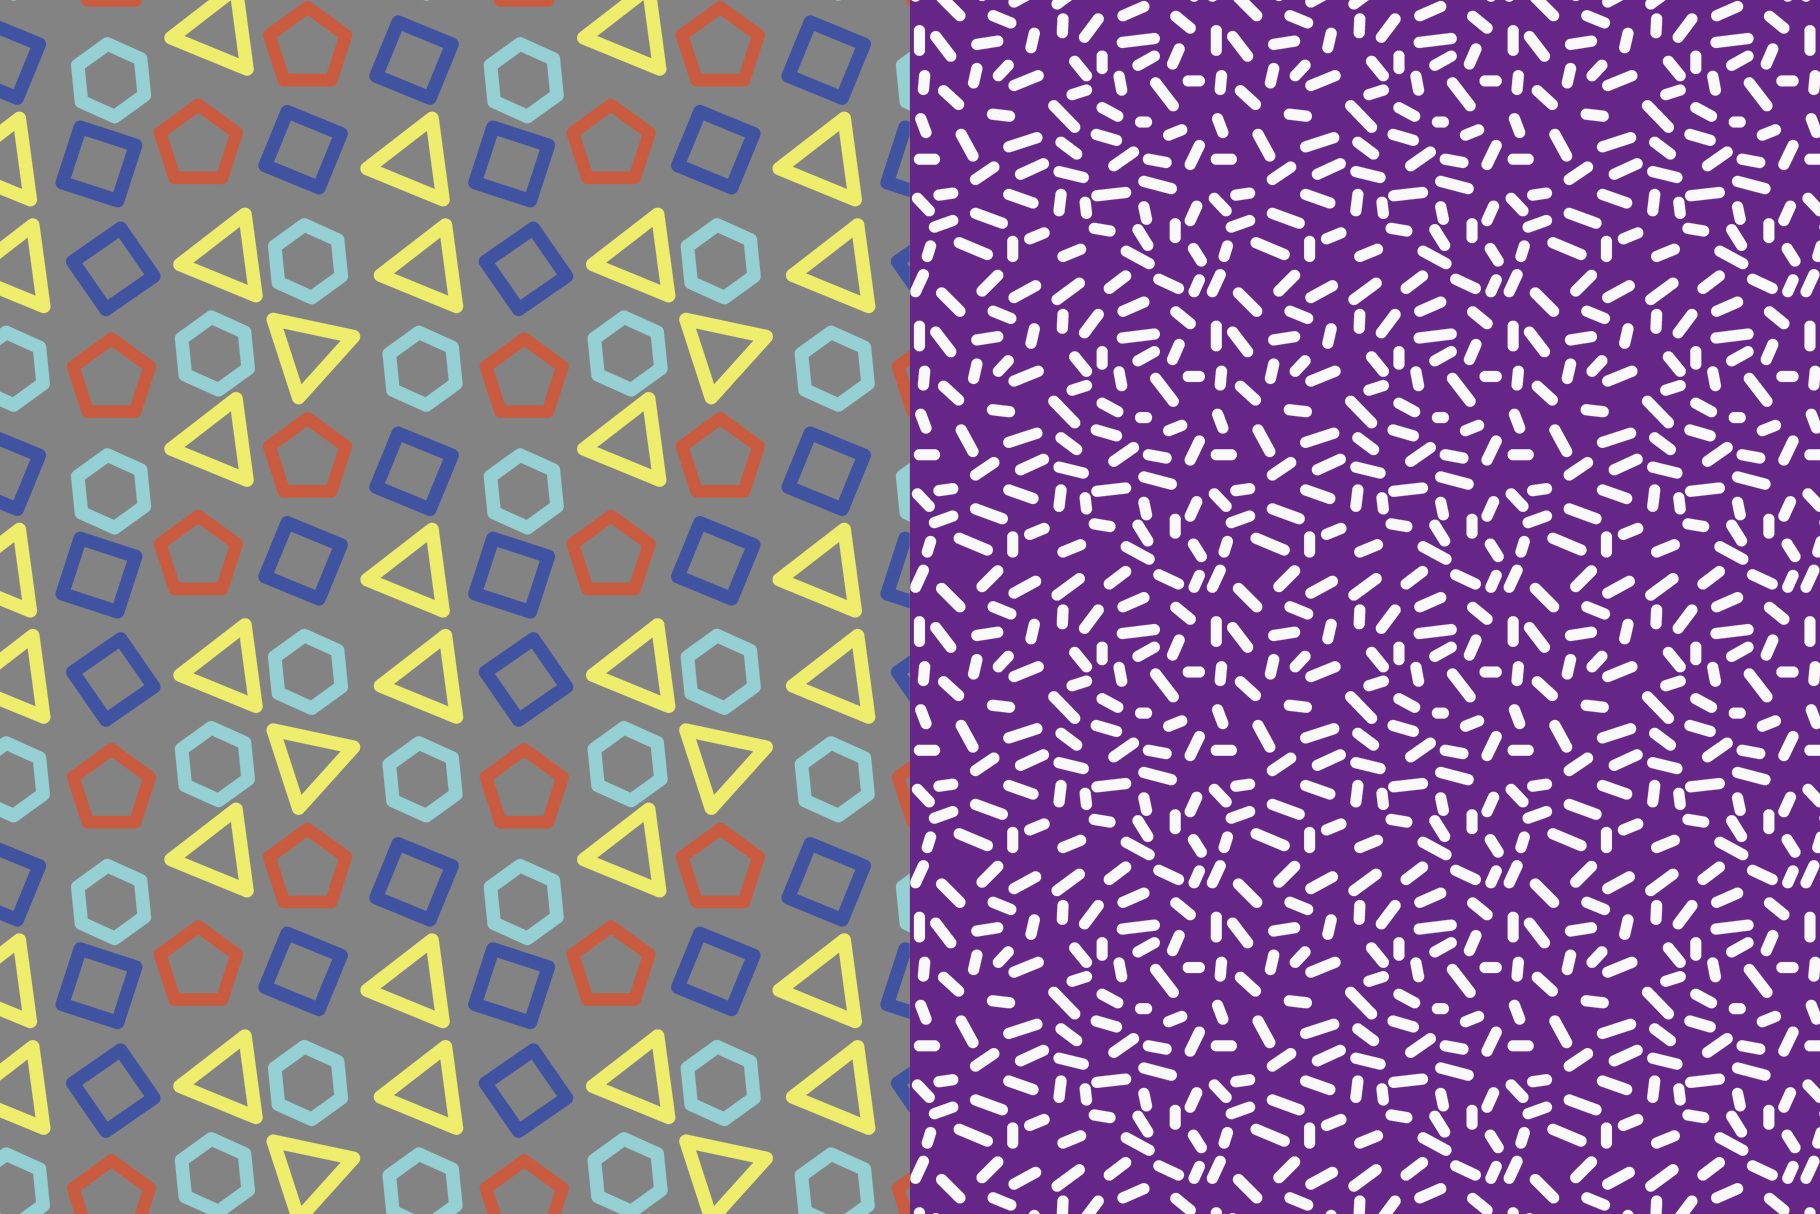 Abstract Geometric Patterns example image 8